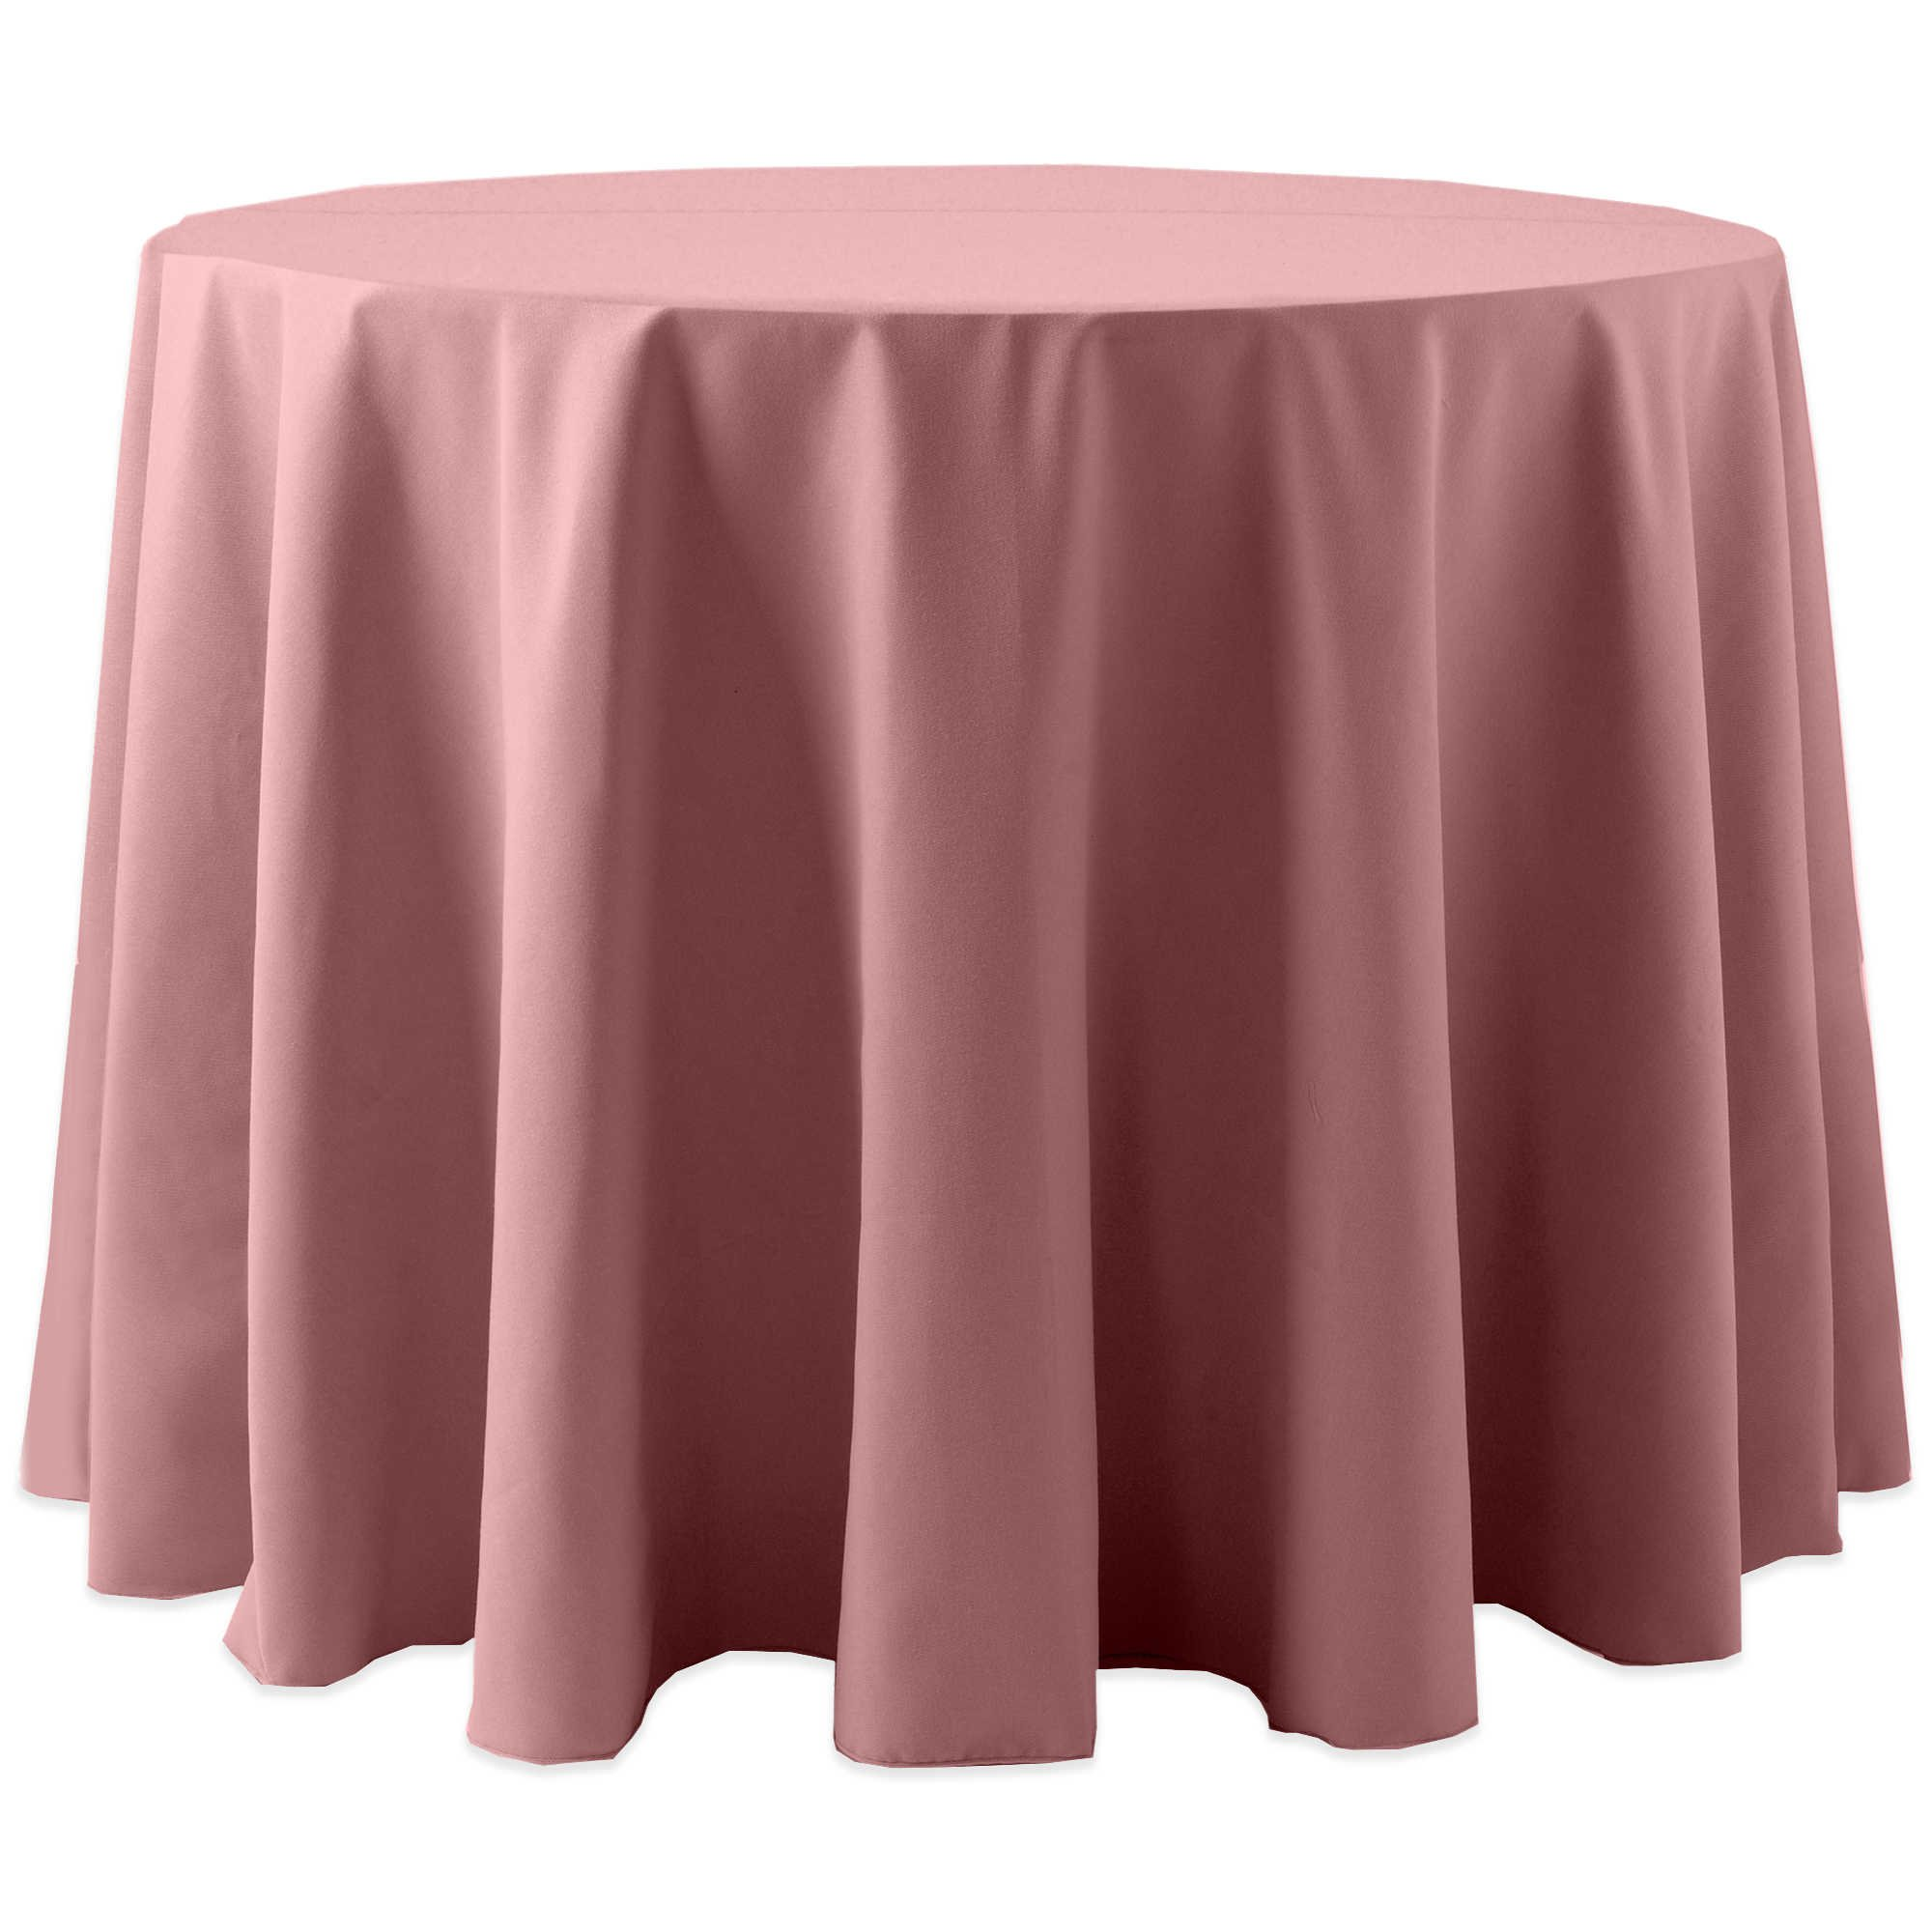 Ultimate Textile (5 Pack) Cotton-feel Spun Polyester 90-Inch Round Tablecloth - for Wedding and Banquet, Hotel or Home Fine Dining use, Dusty Rose Light Pink